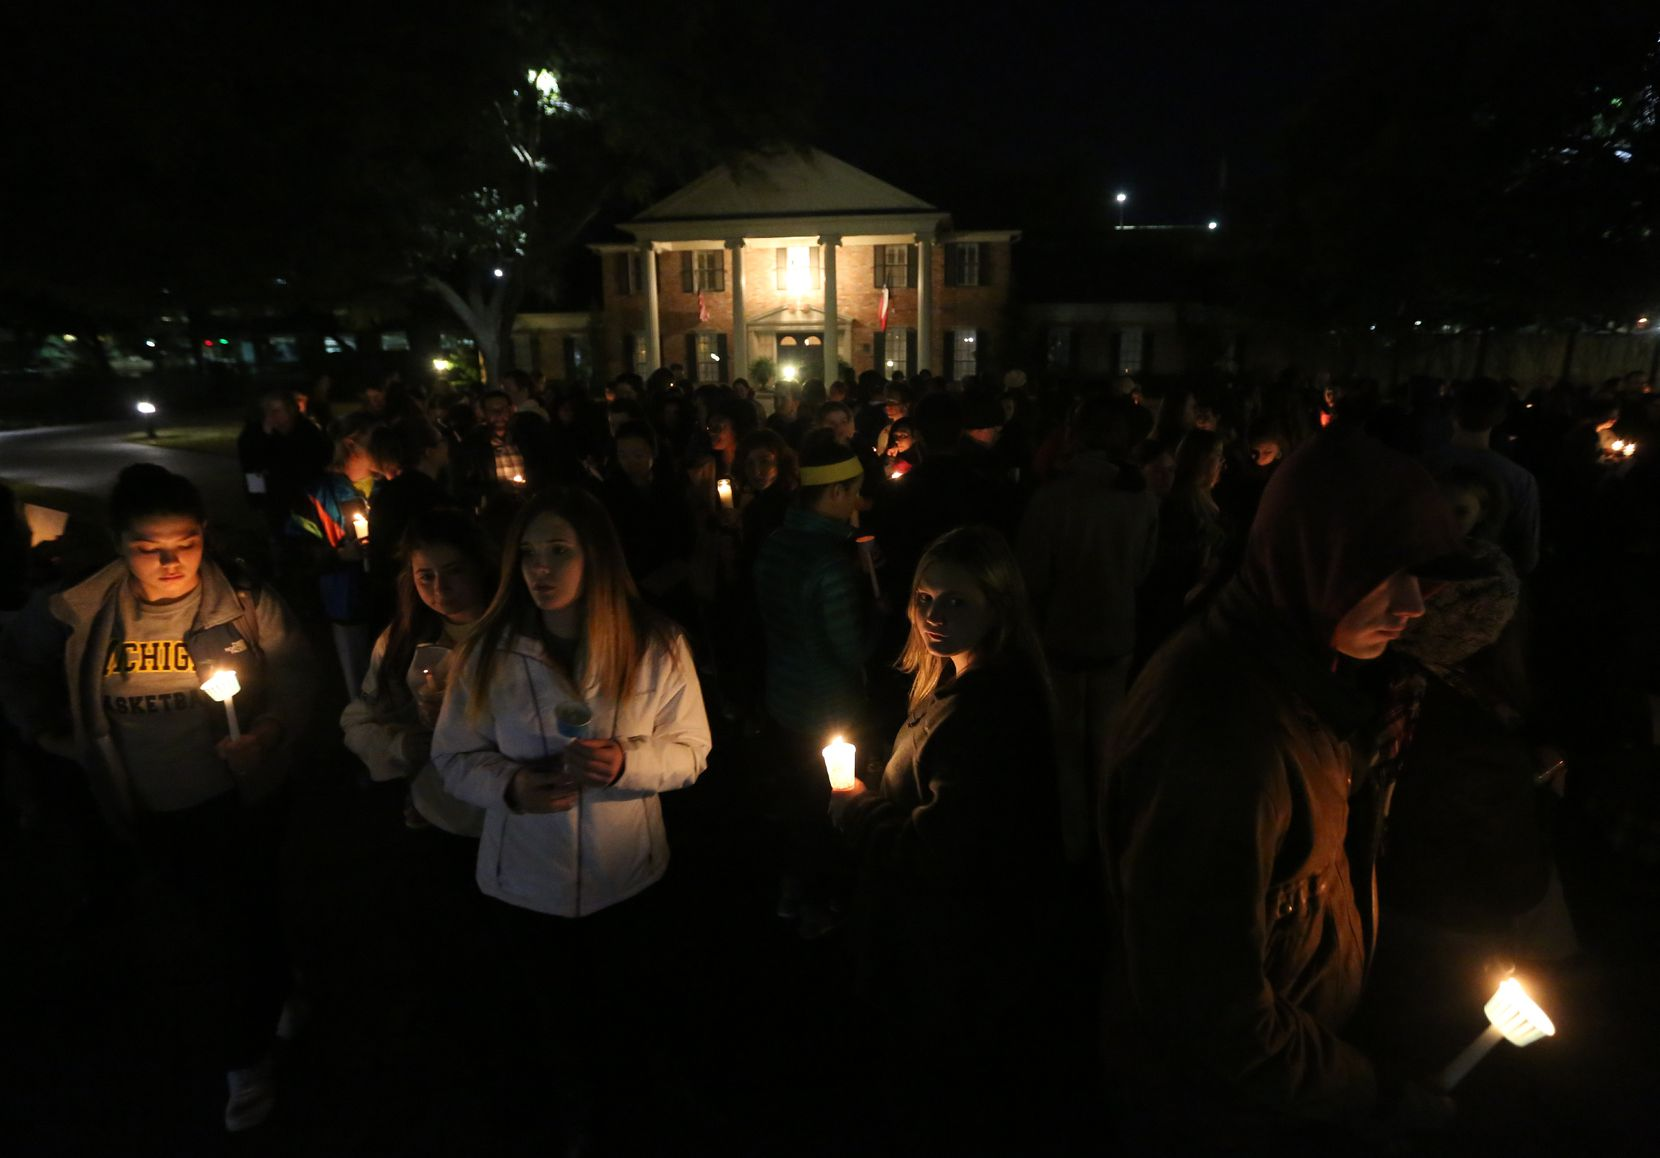 """Baylor students and alumni hold a candlelight vigil outside the home of Baylor University President Ken Starr, in what organizers call a Survivors Stand"""", Monday, Feb. 8, 2016, in Waco, Texas. The students and supporters attended the event in an effort to urge changes to how the school handles sexual assault. (Rod Aydelotte/Waco Tribune Herald, via AP)"""